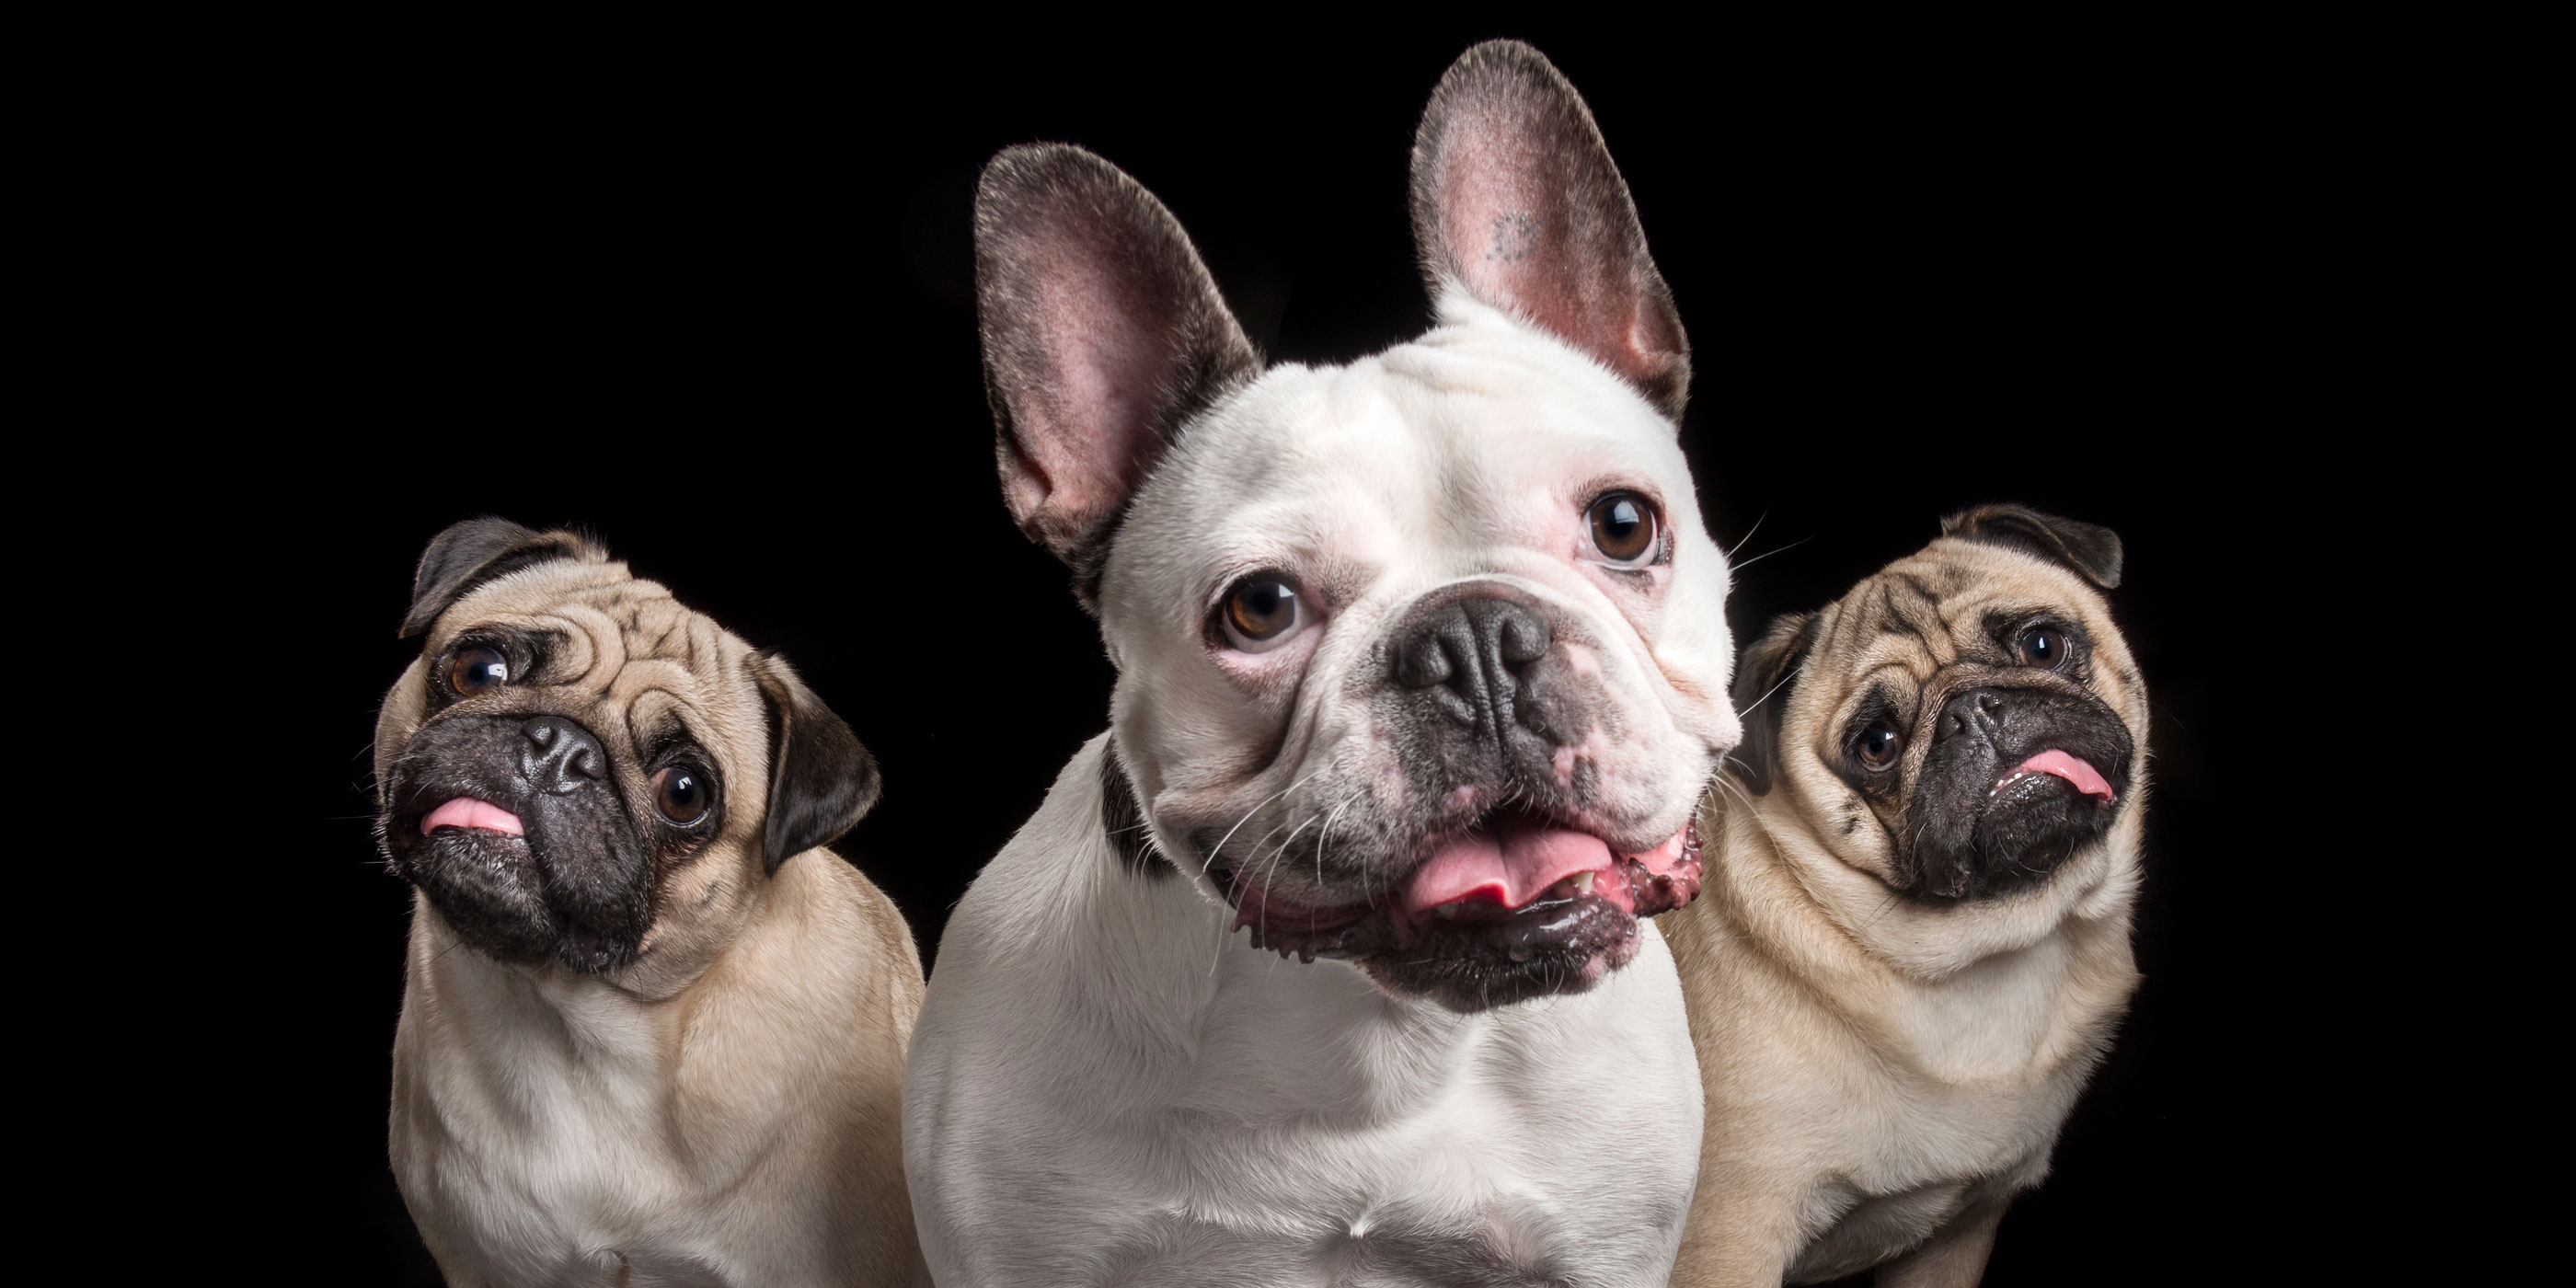 three smiling pals - two pugs and one french bulldog